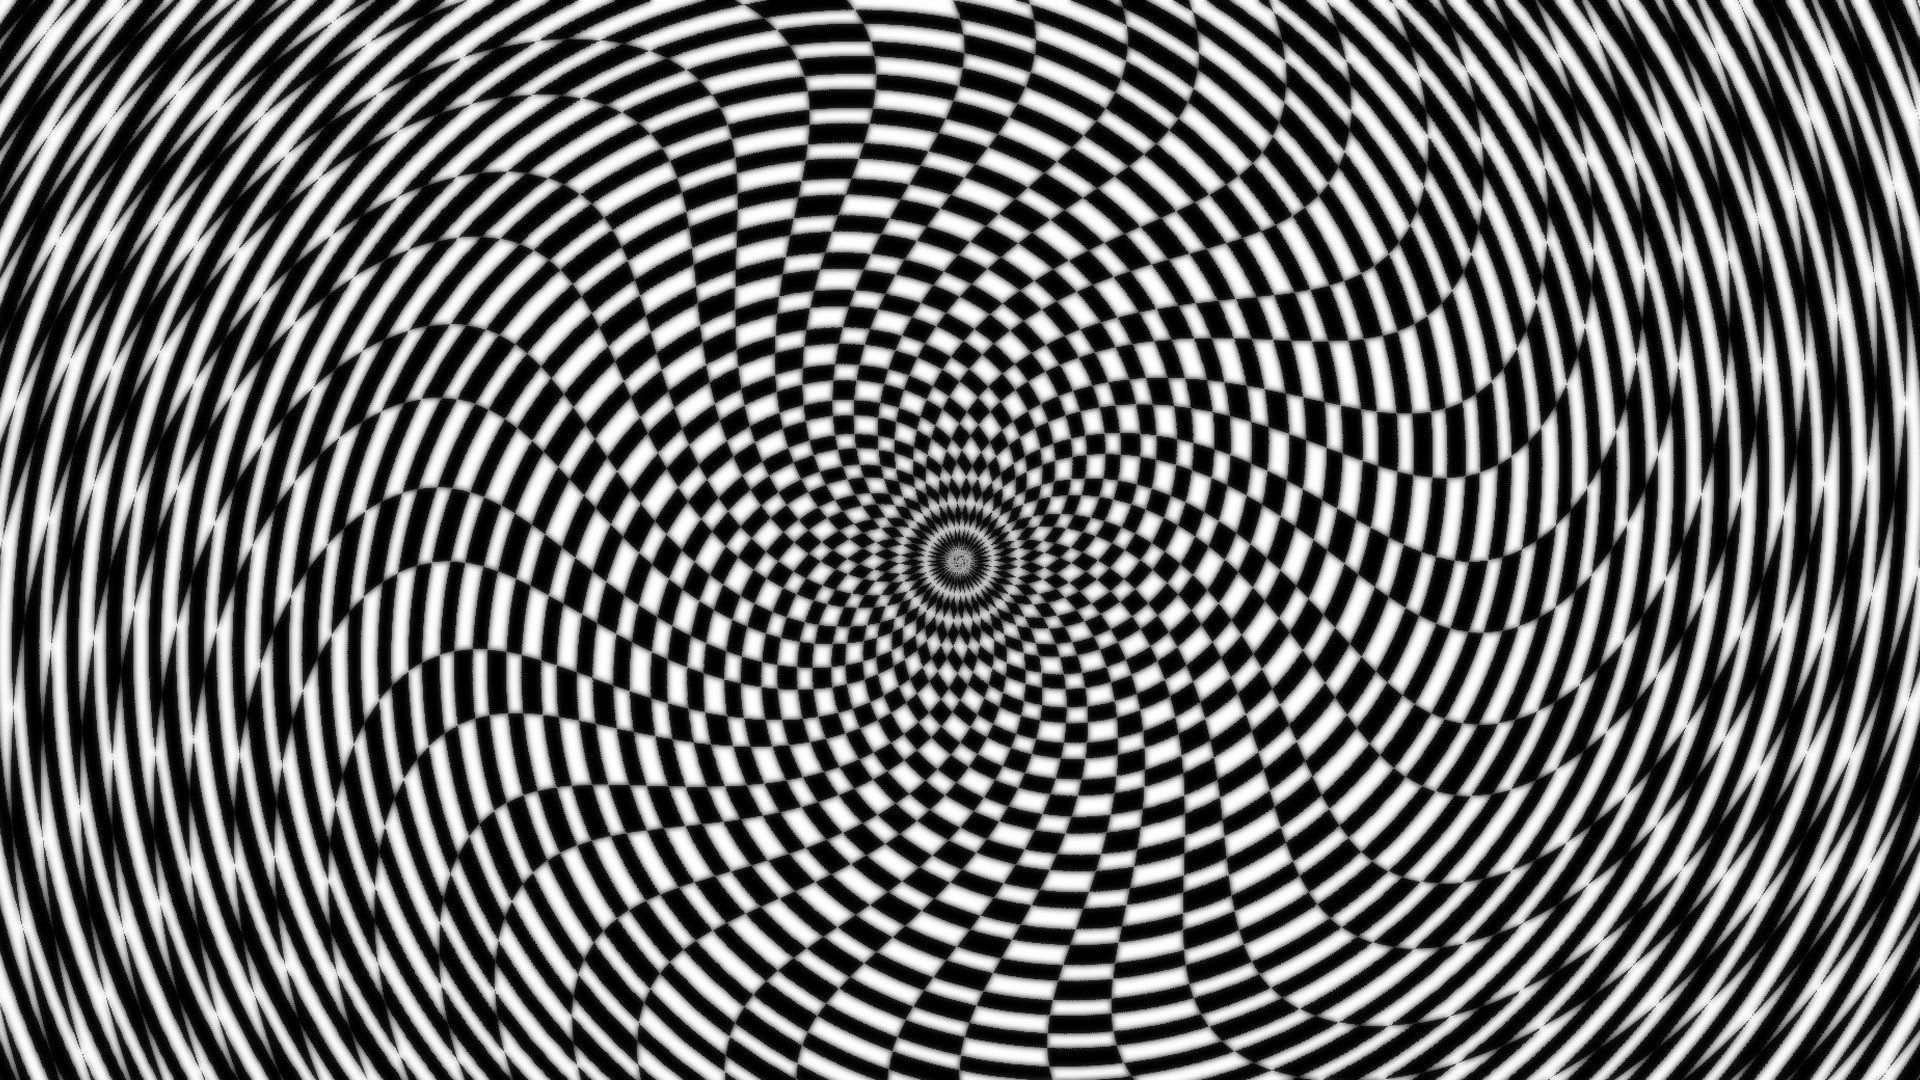 Awesome background pictures wallpapersafari - Awesome Optical Illusion Wallpaper Wallpapersafari